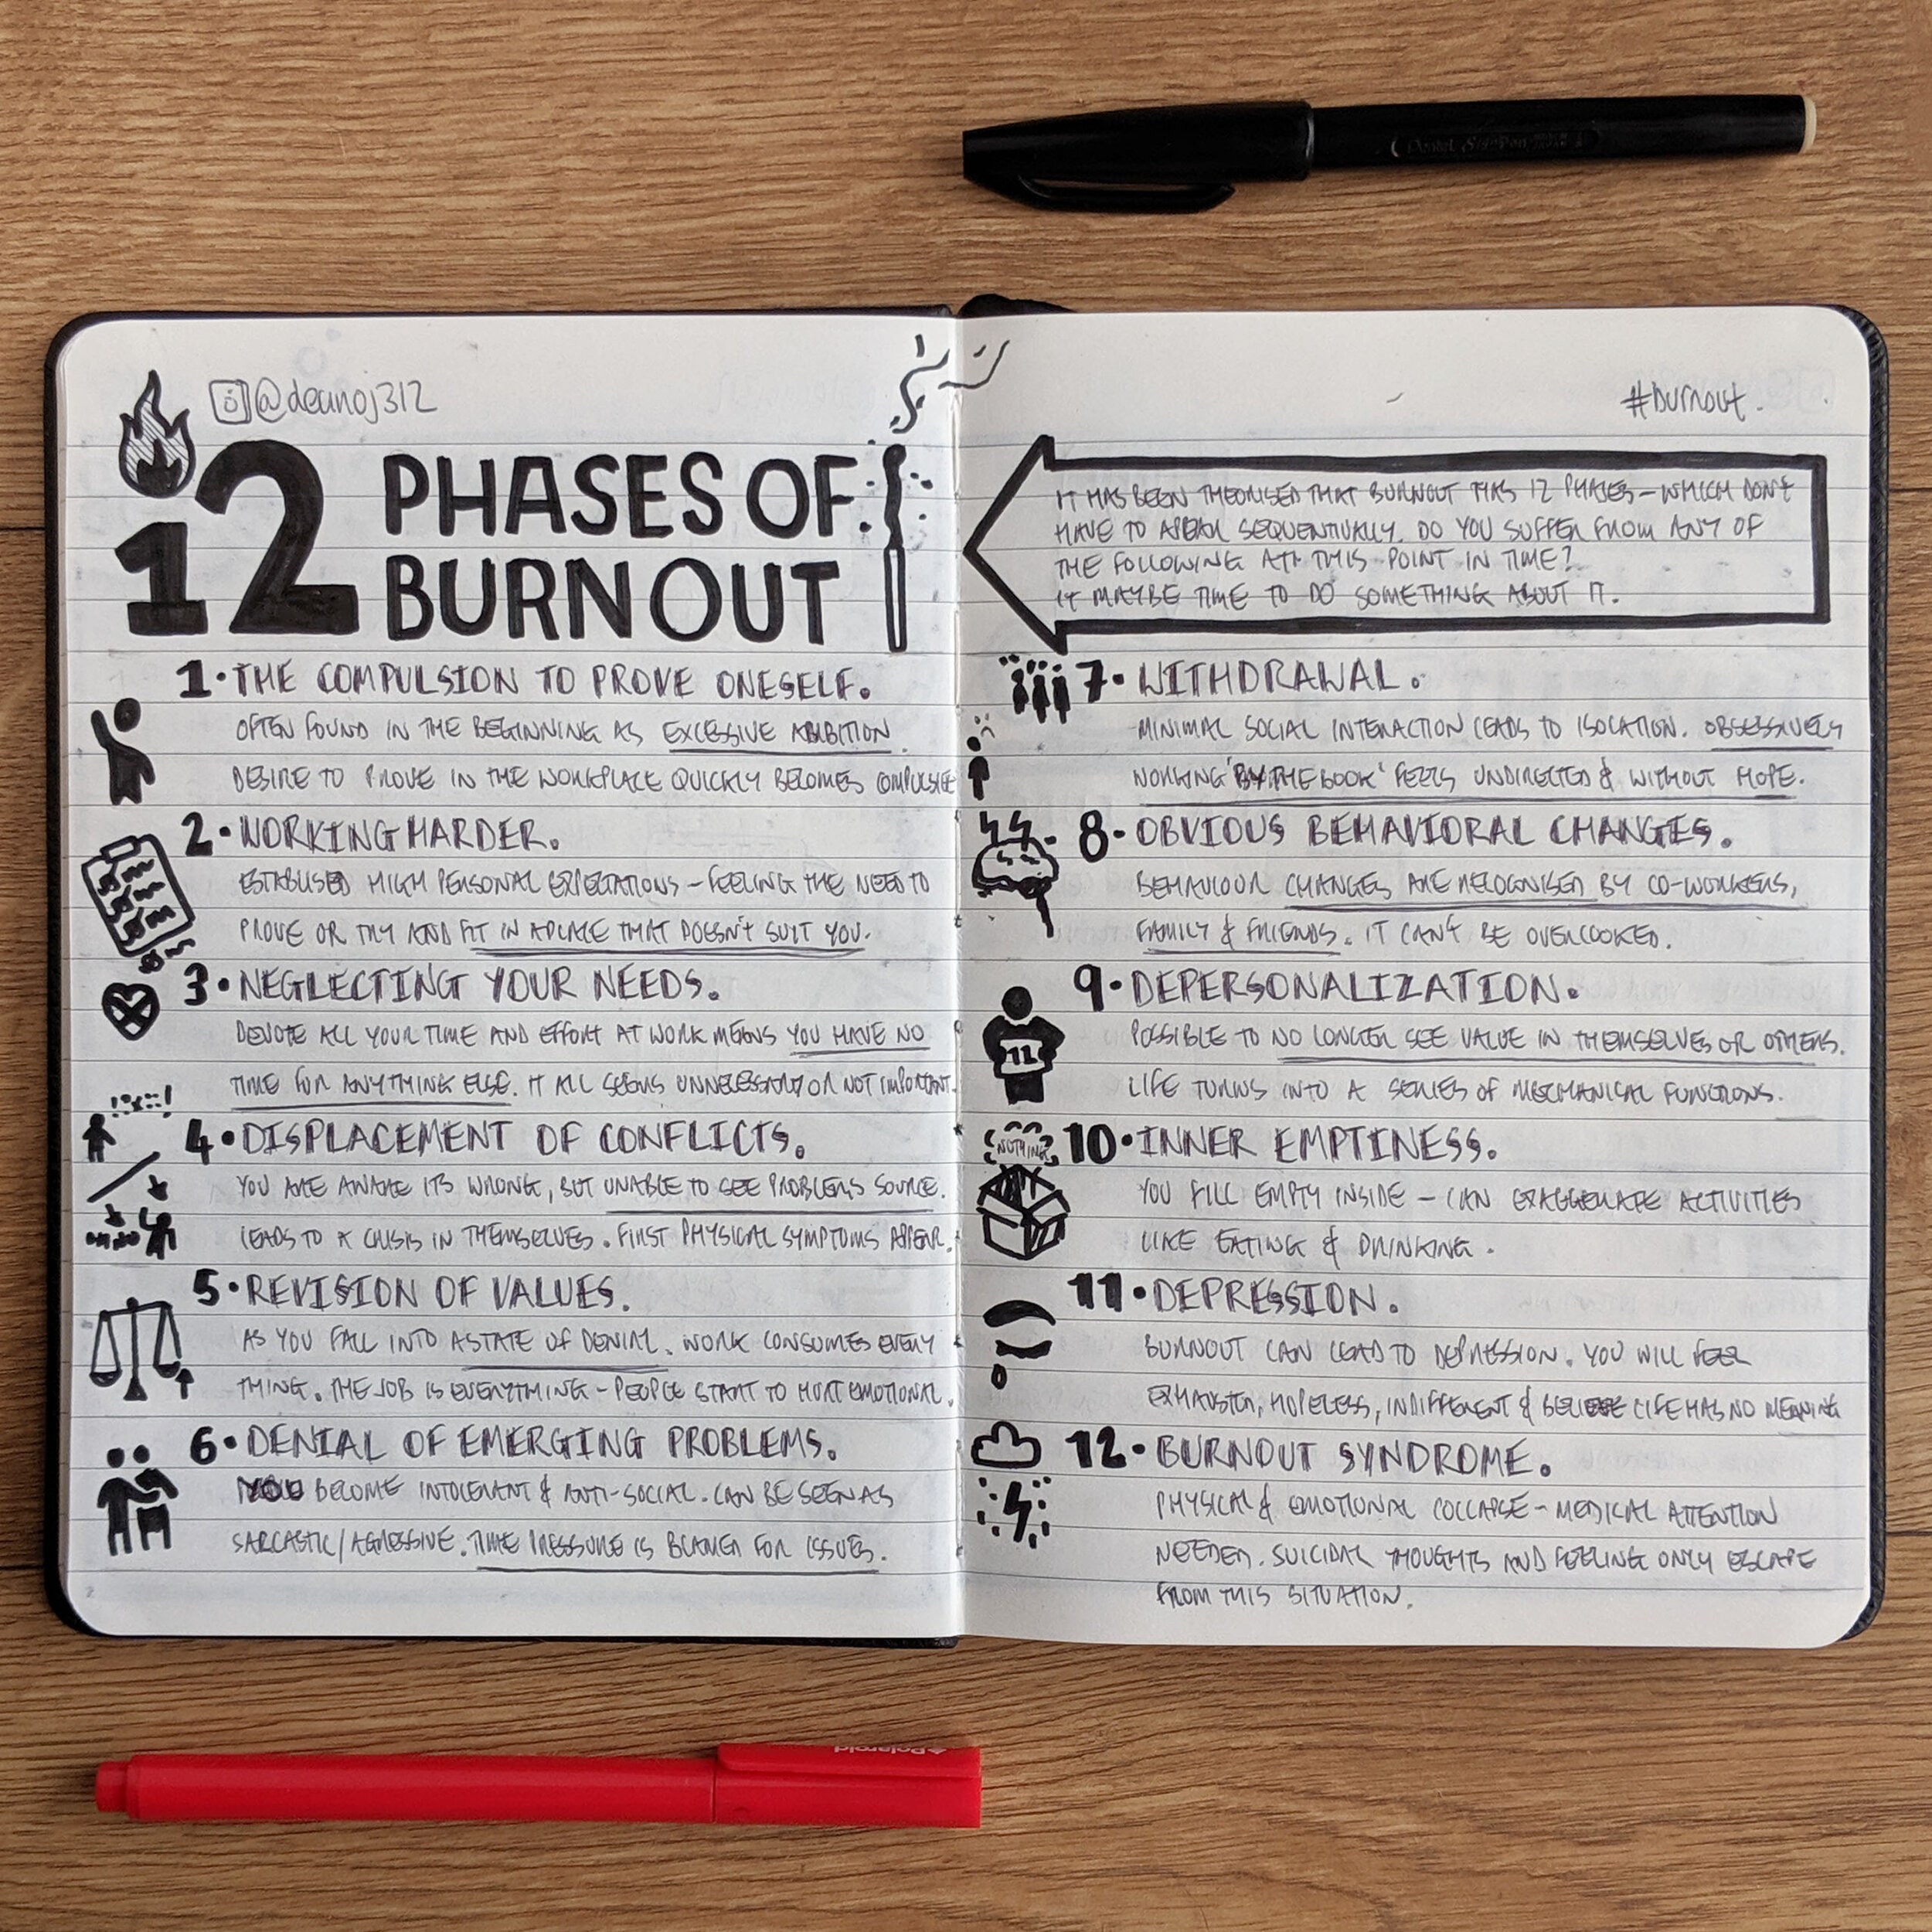 12PhasesOfBurnout1.jpg